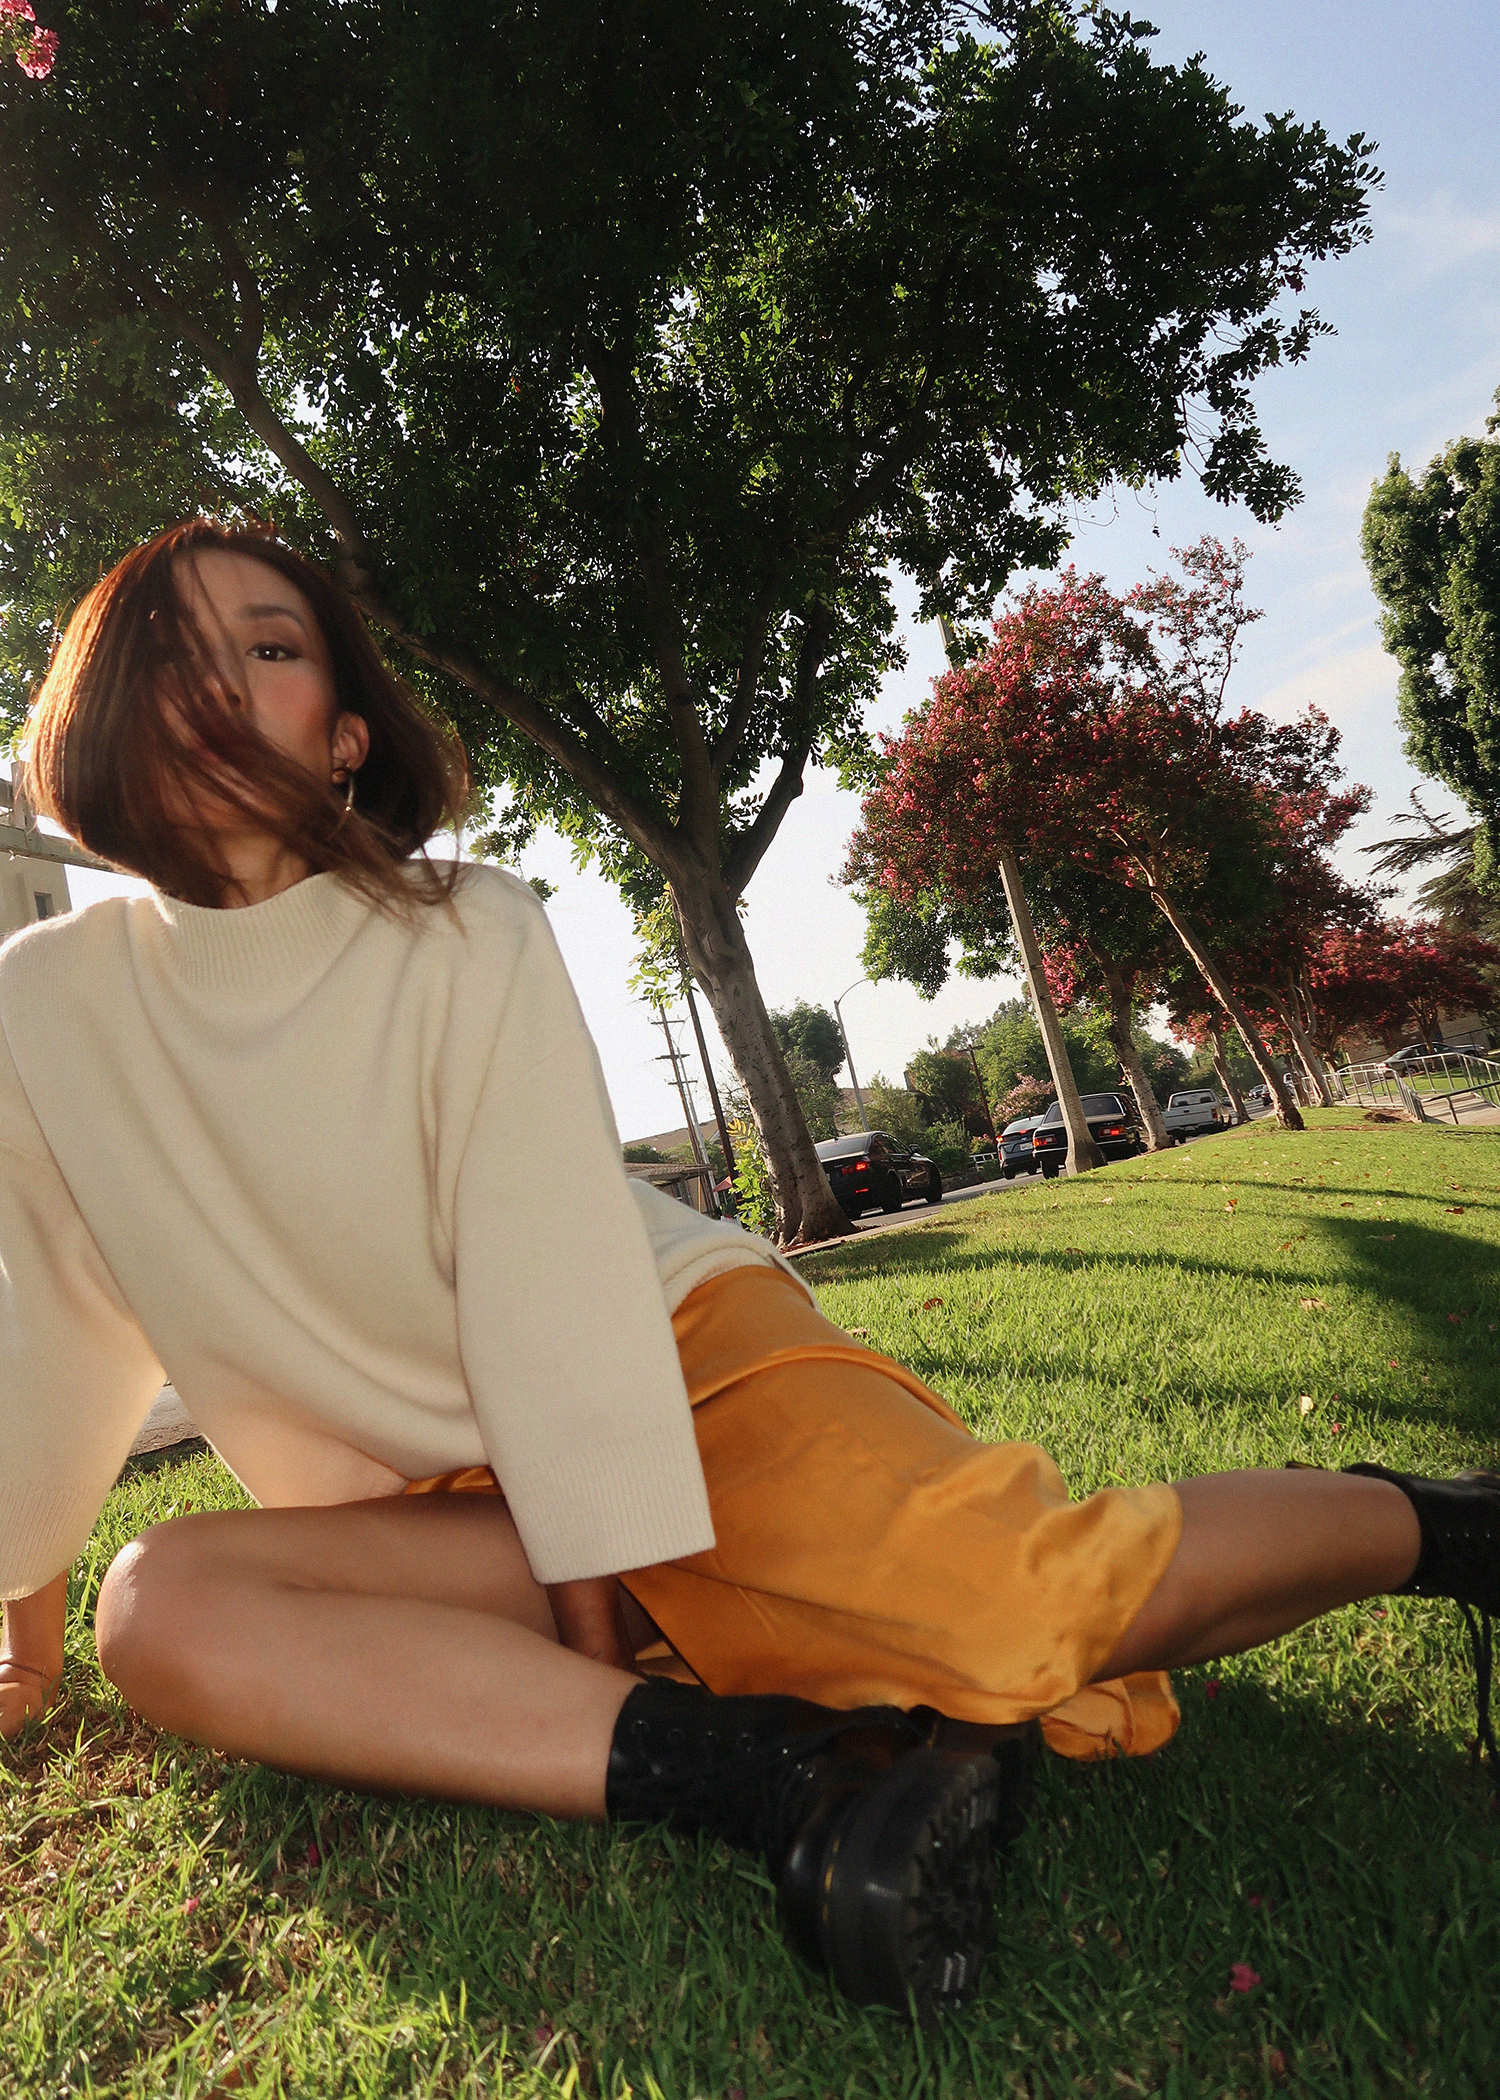 Neon Blush, Baldwin clothing, Baldwin USA, golden yellow silk slit skirt, mock neck turtleneck sweater, knit sweater, off white sweater, off white knits, fall apparel, fall fashion, fall style, Los Angeles, Staud croc bag, Dr Martens platform Jadon boot, Doc Martens